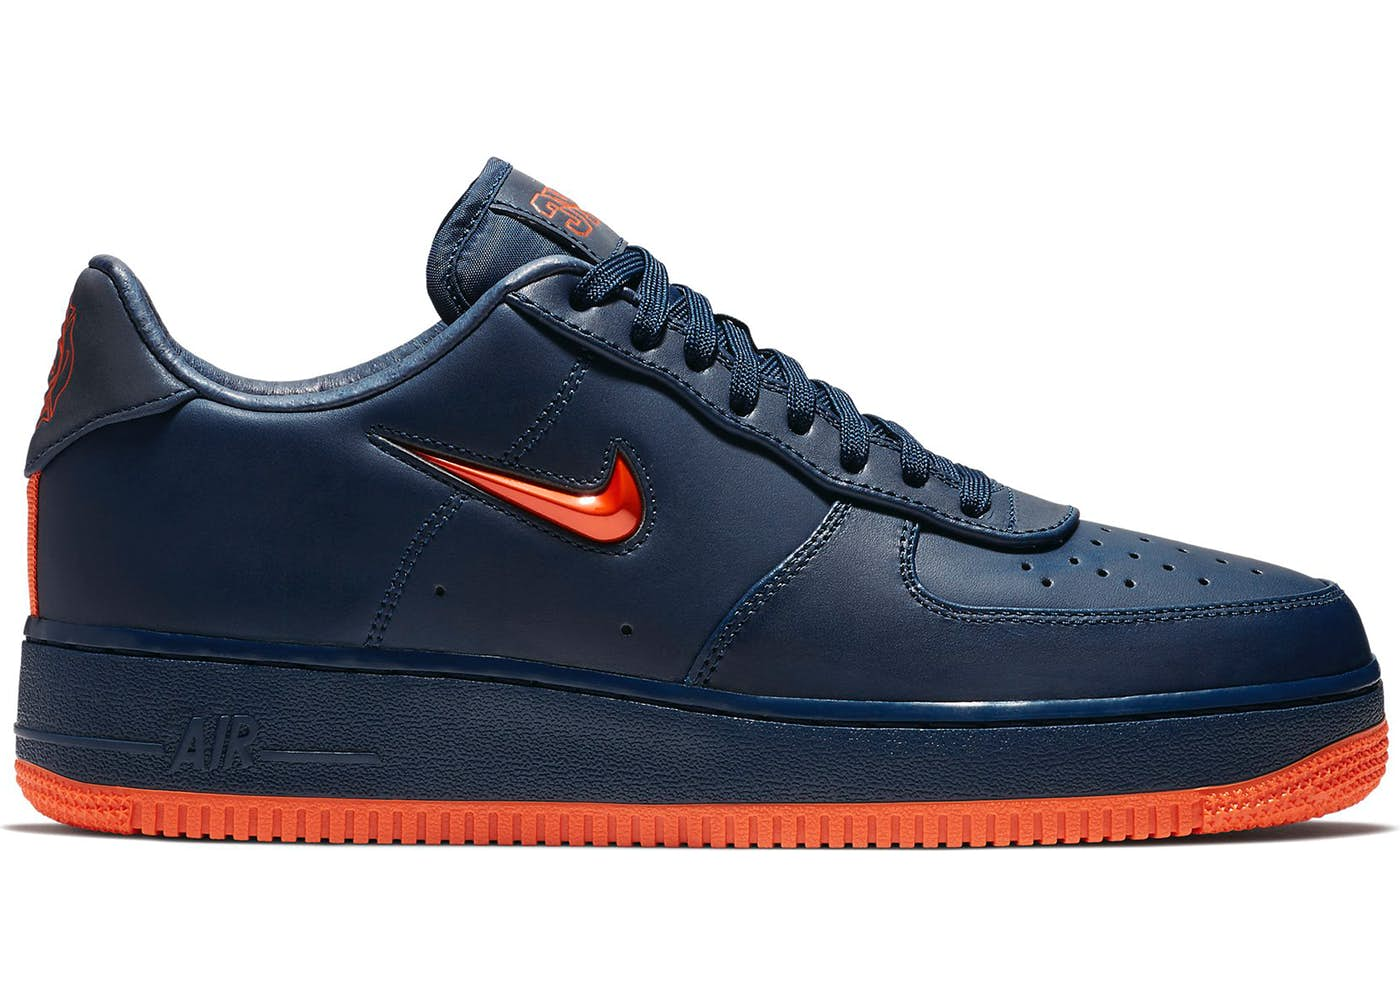 BUY Nike Air Force 1 Low NYC Obsidian Orange For Sale – authentechs.com 677d8ea71